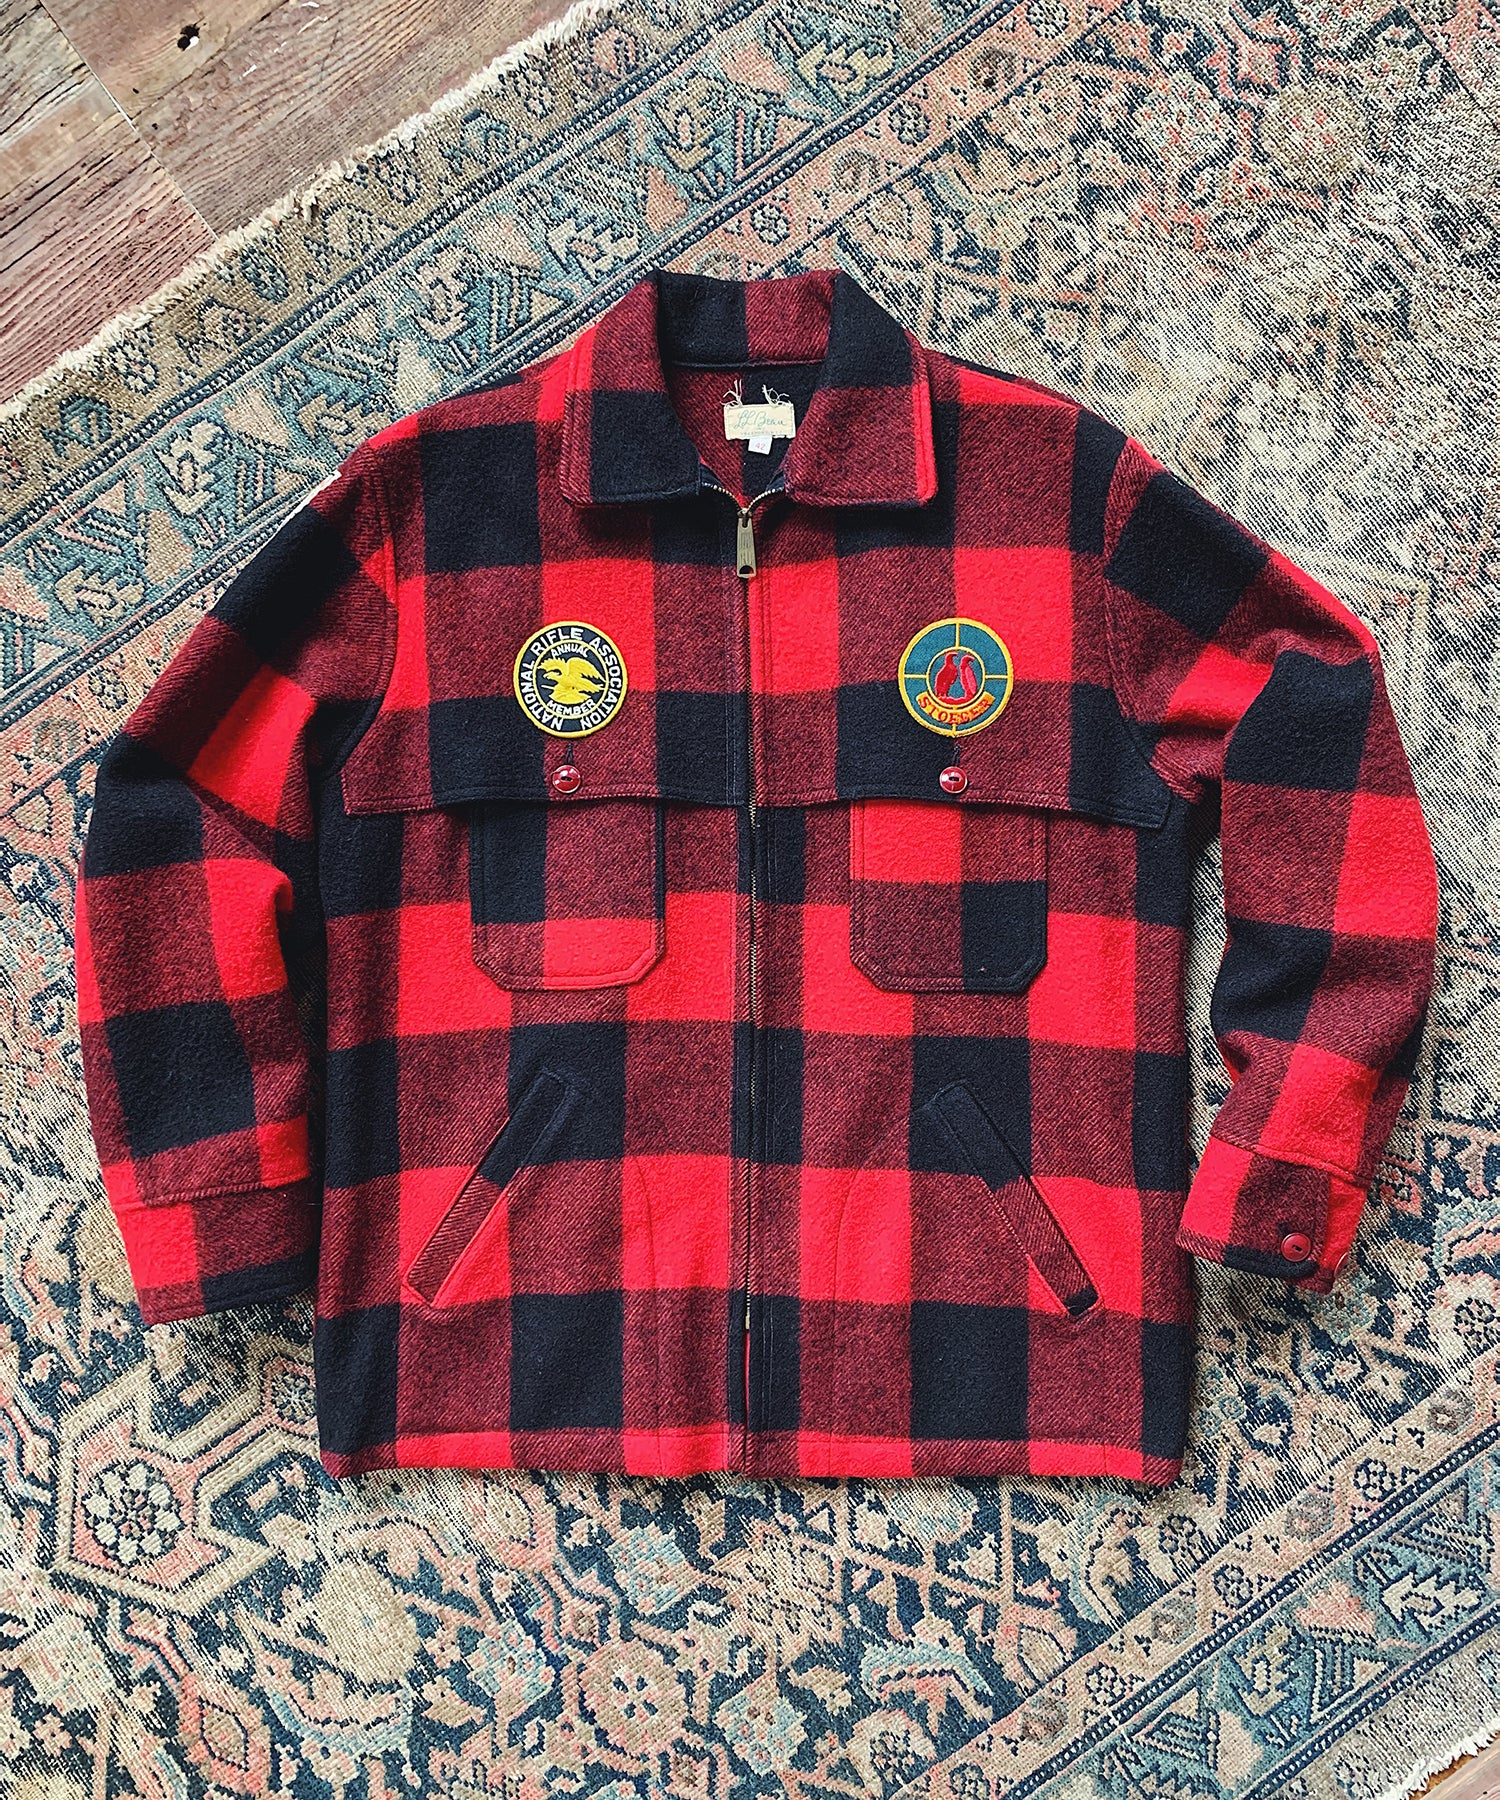 Item #4 - Todd Snyder X Wooden Sleepers 1960's Maine Guide Jacket in Red & Black Plaid - SOLD OUT